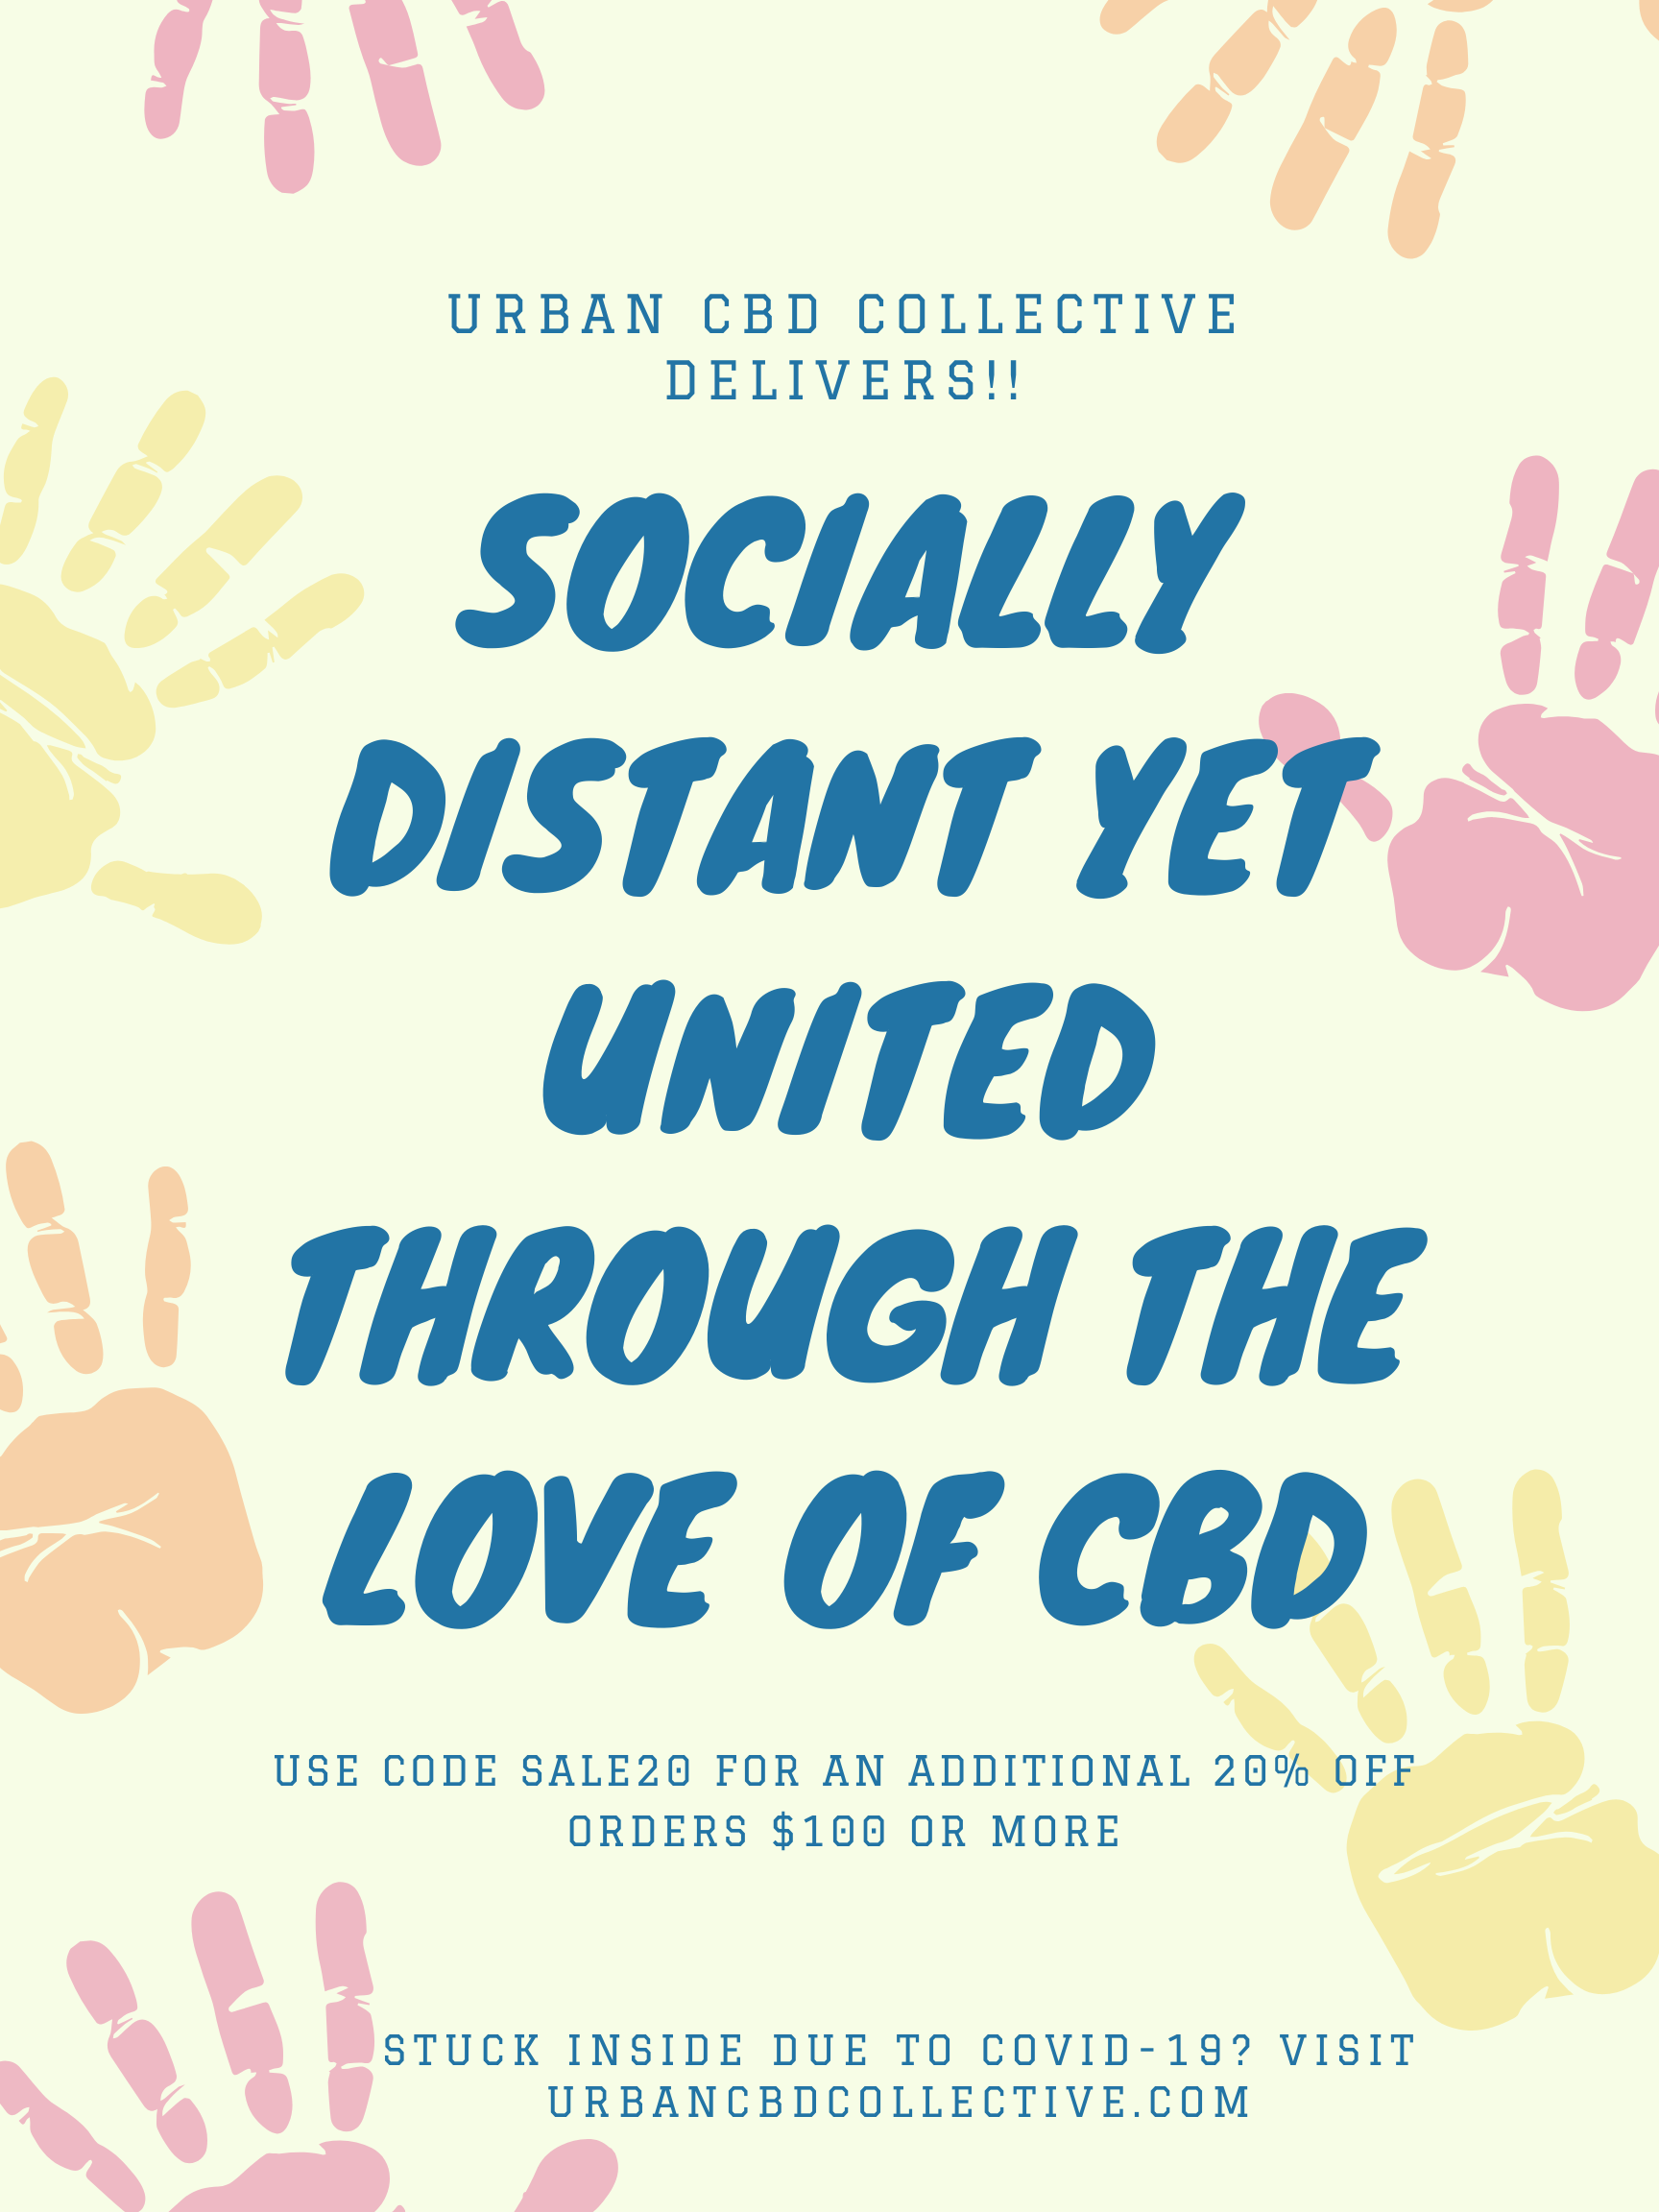 At Urban CBD Collective We love Premium Hemp CBD Products